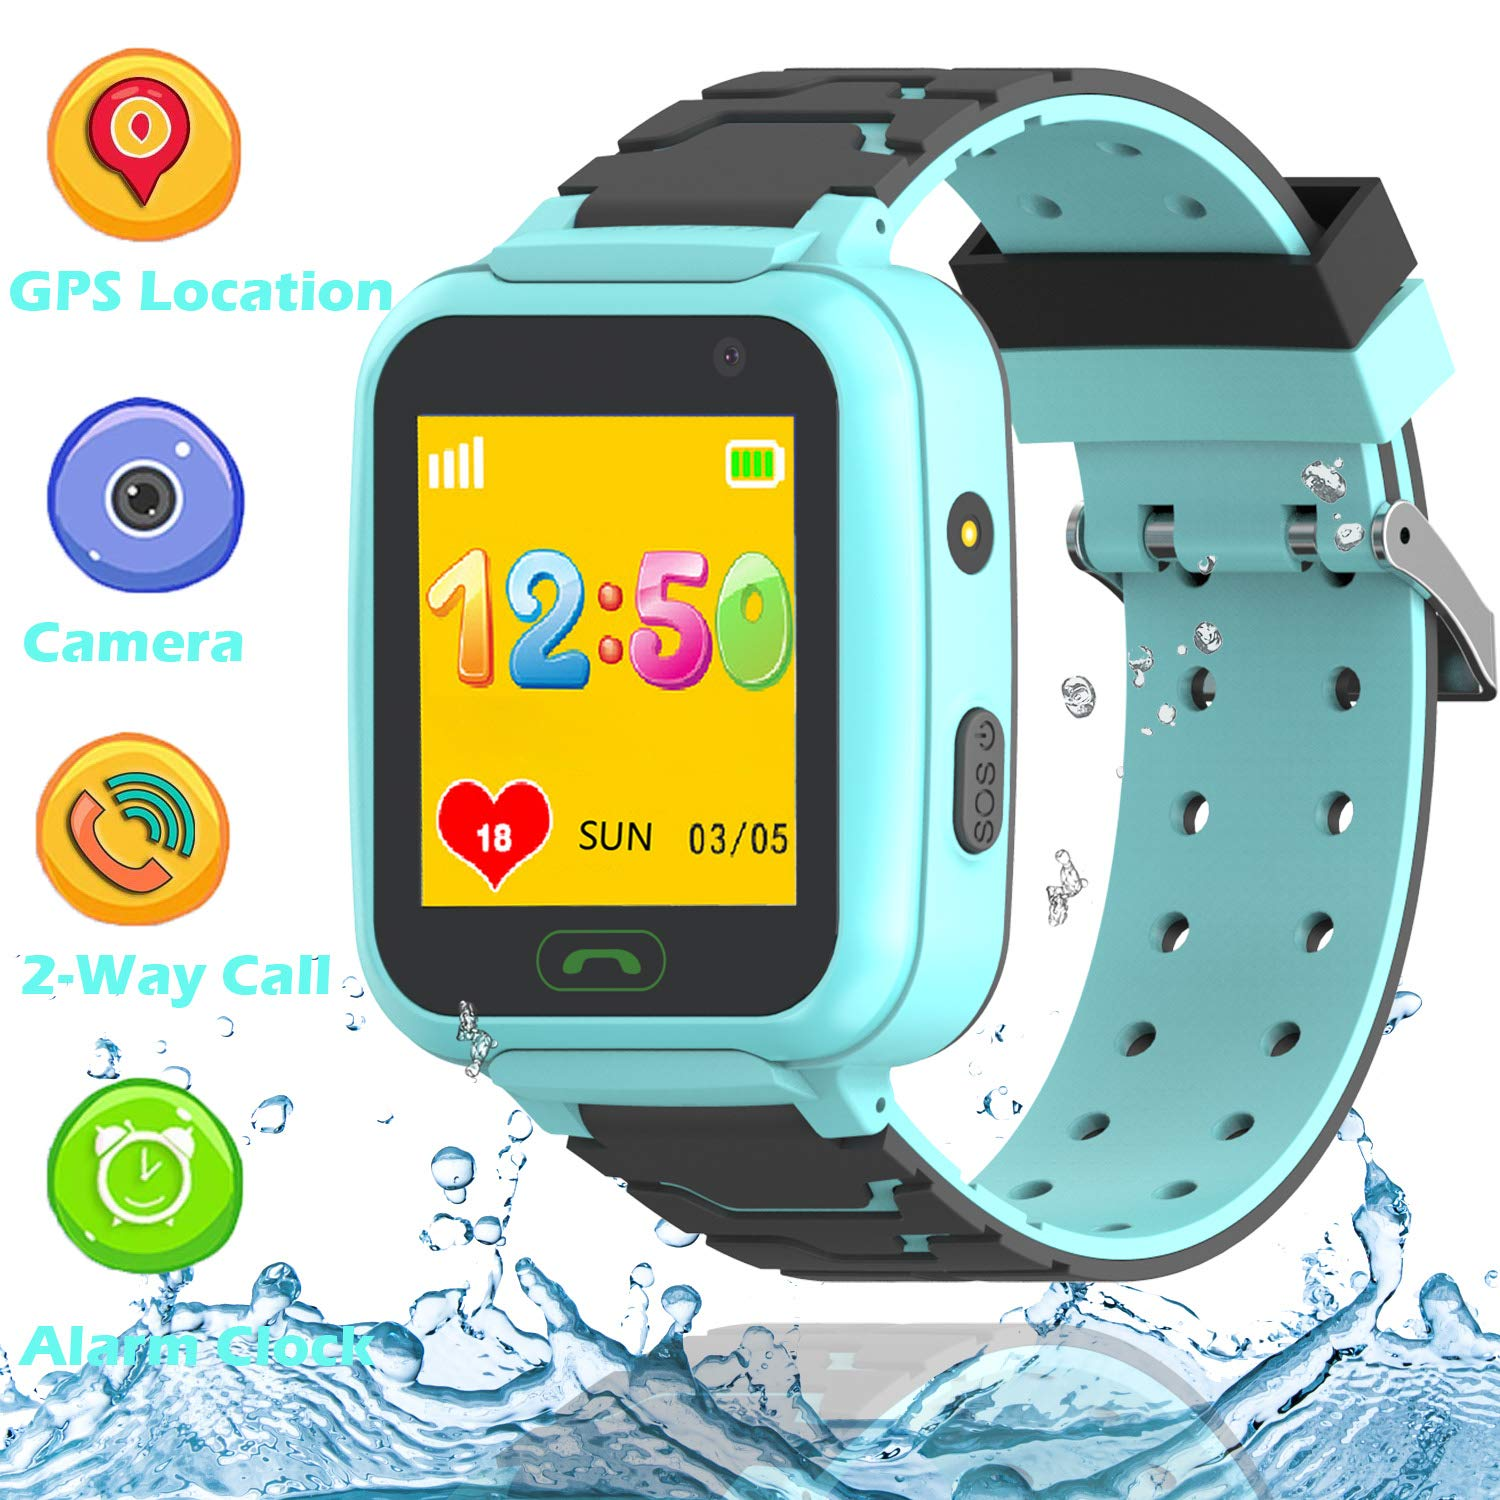 GPS Smart Watch for Kids – Boys Girls Smartwatch Phone with GPS/LBS Locator 2 Way Calls SOS Camera Voice Chat Math Game Step Counter Geo Fence for ...